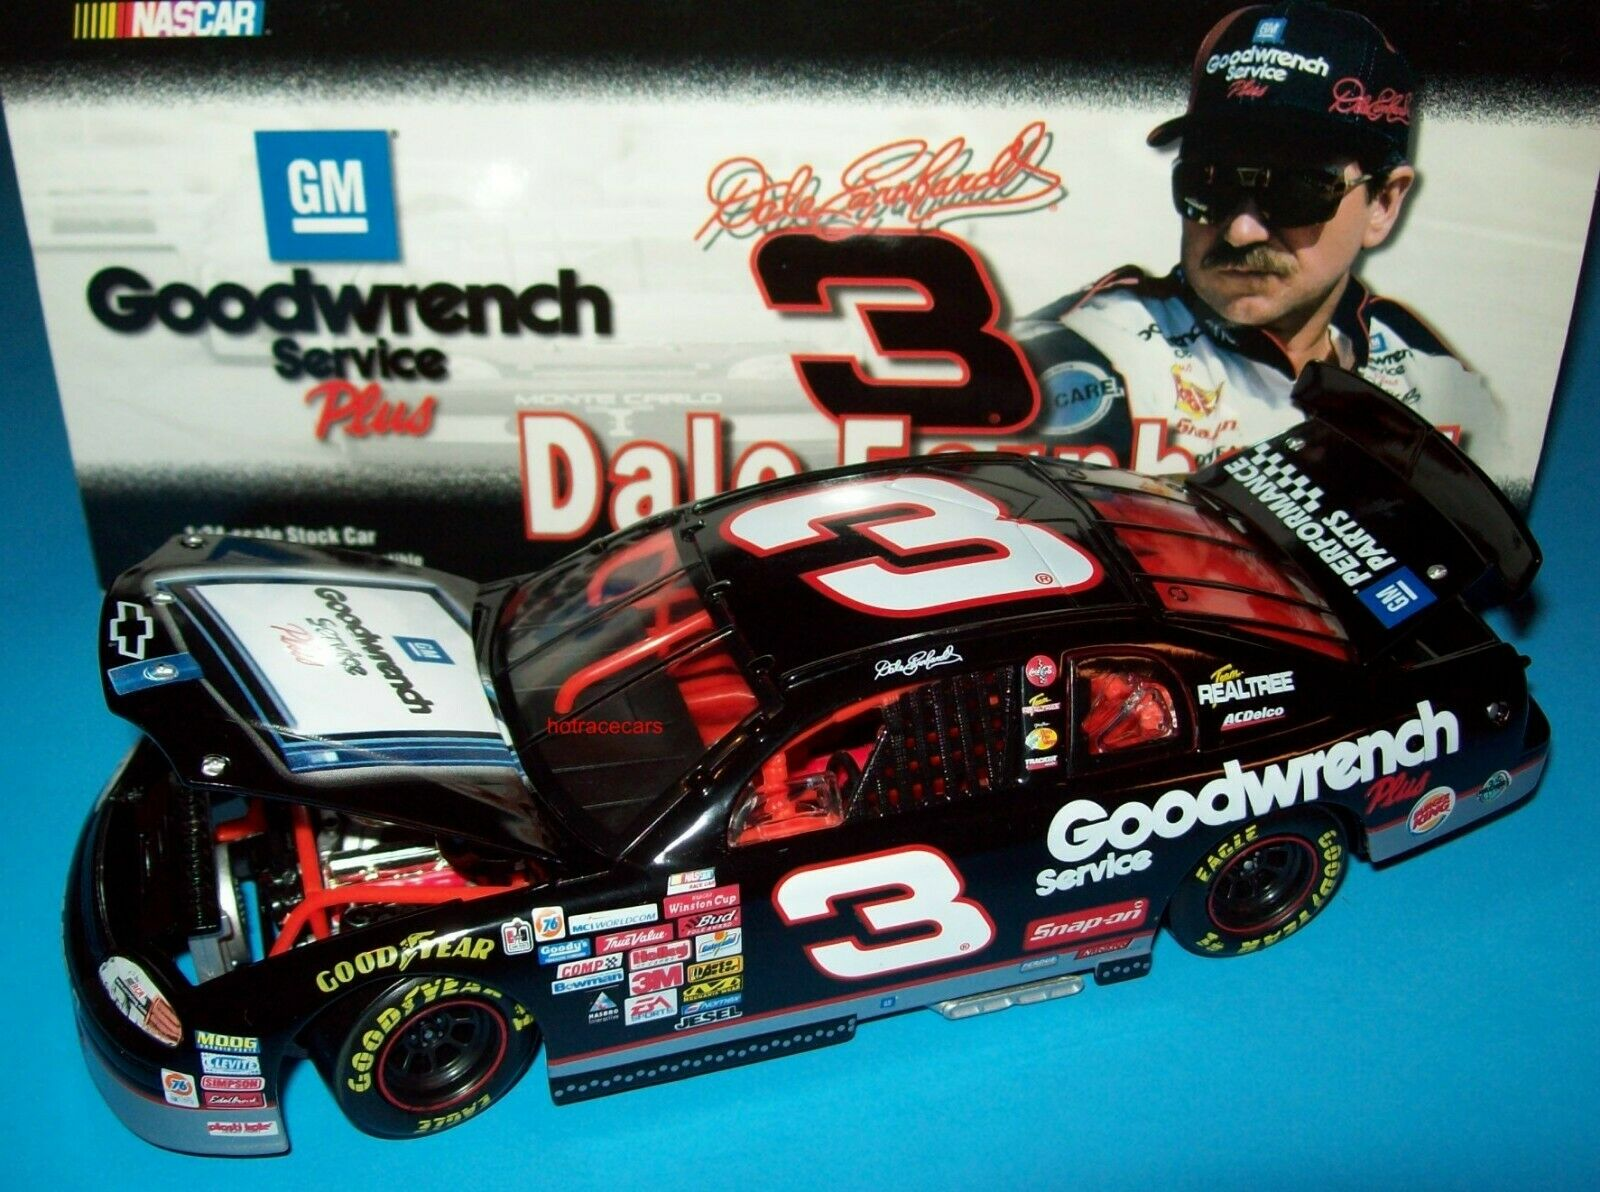 Dale Earnhardt 1999 GM Goodwrench Service Sign RCR Chevy 1 24 NASCAR Diecast